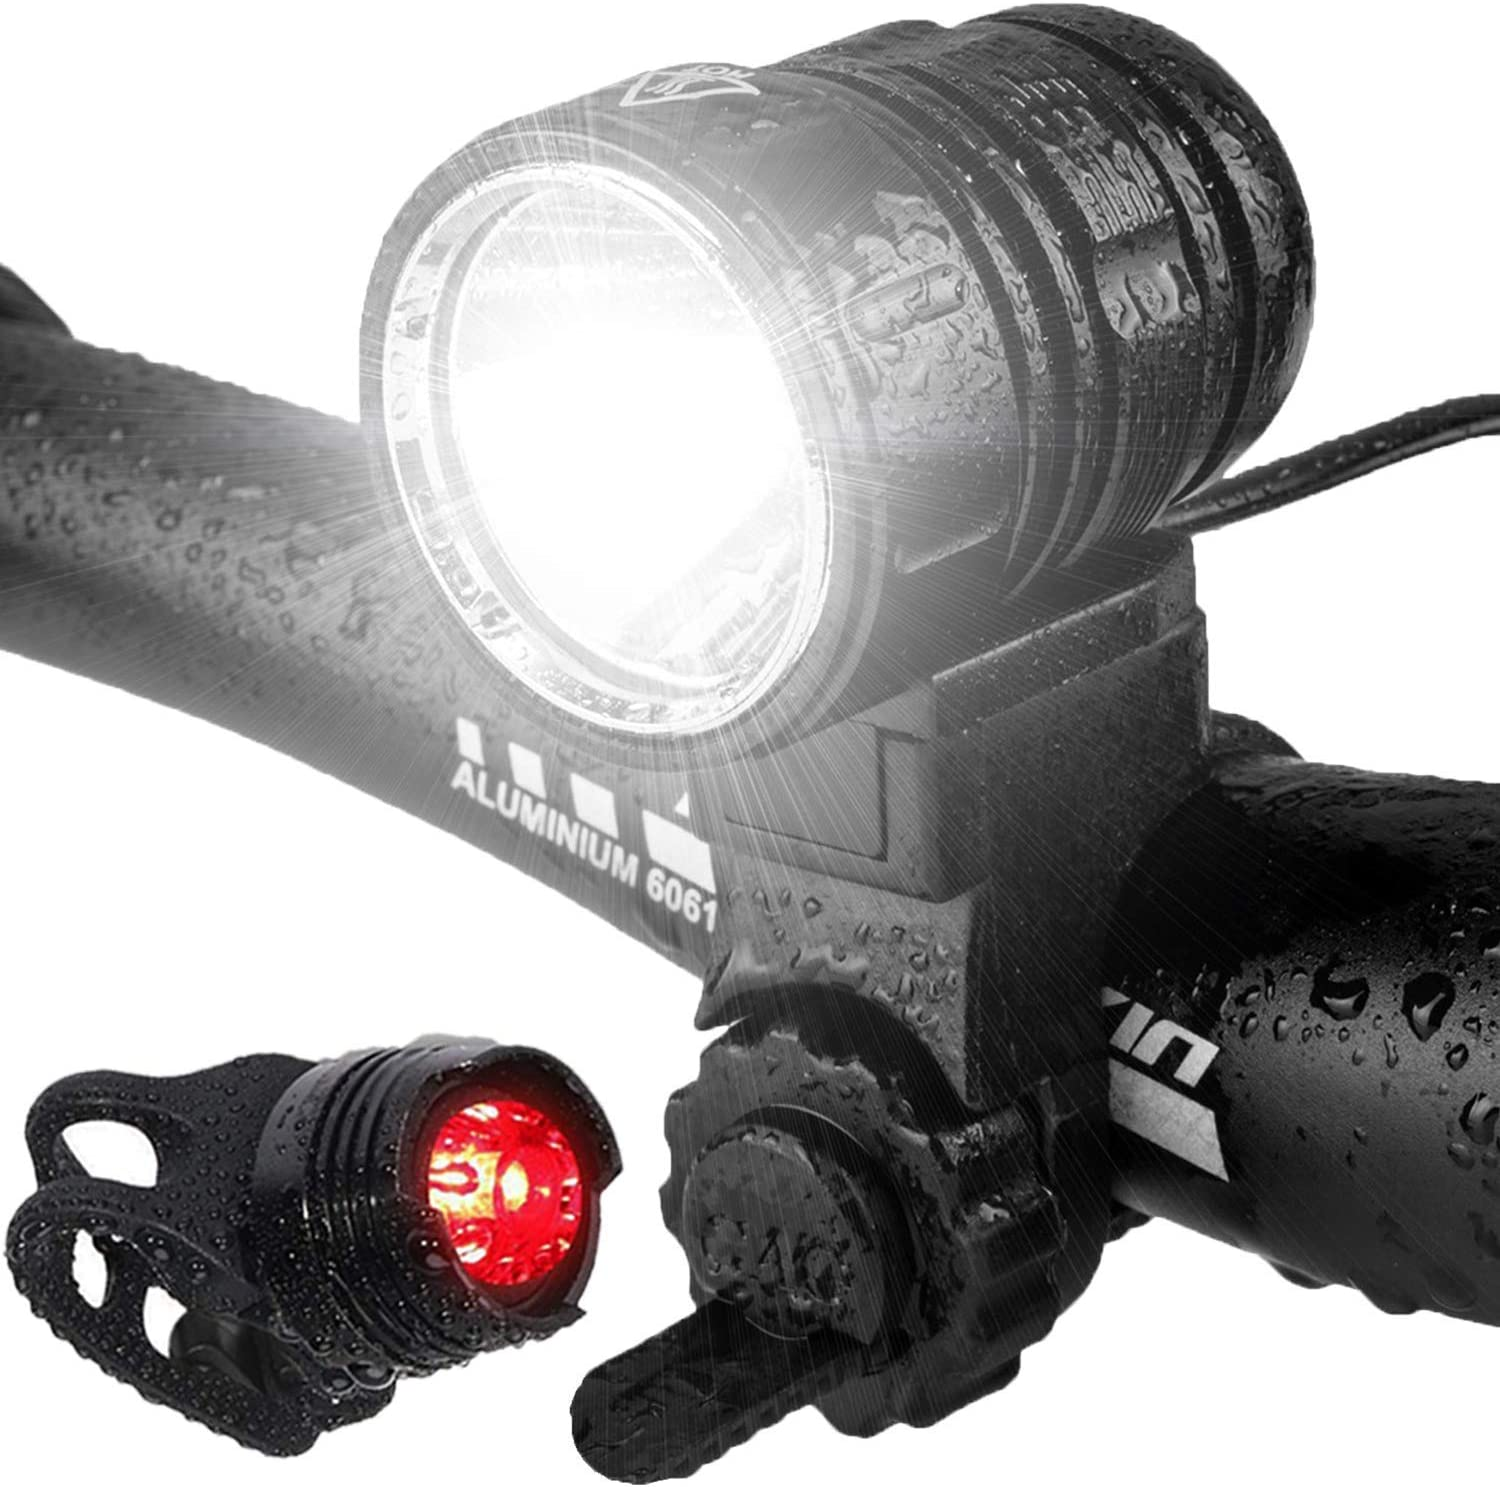 2 Pack USB 1500 Lumens Bicycle Headlight Headlamp with Rubber Band